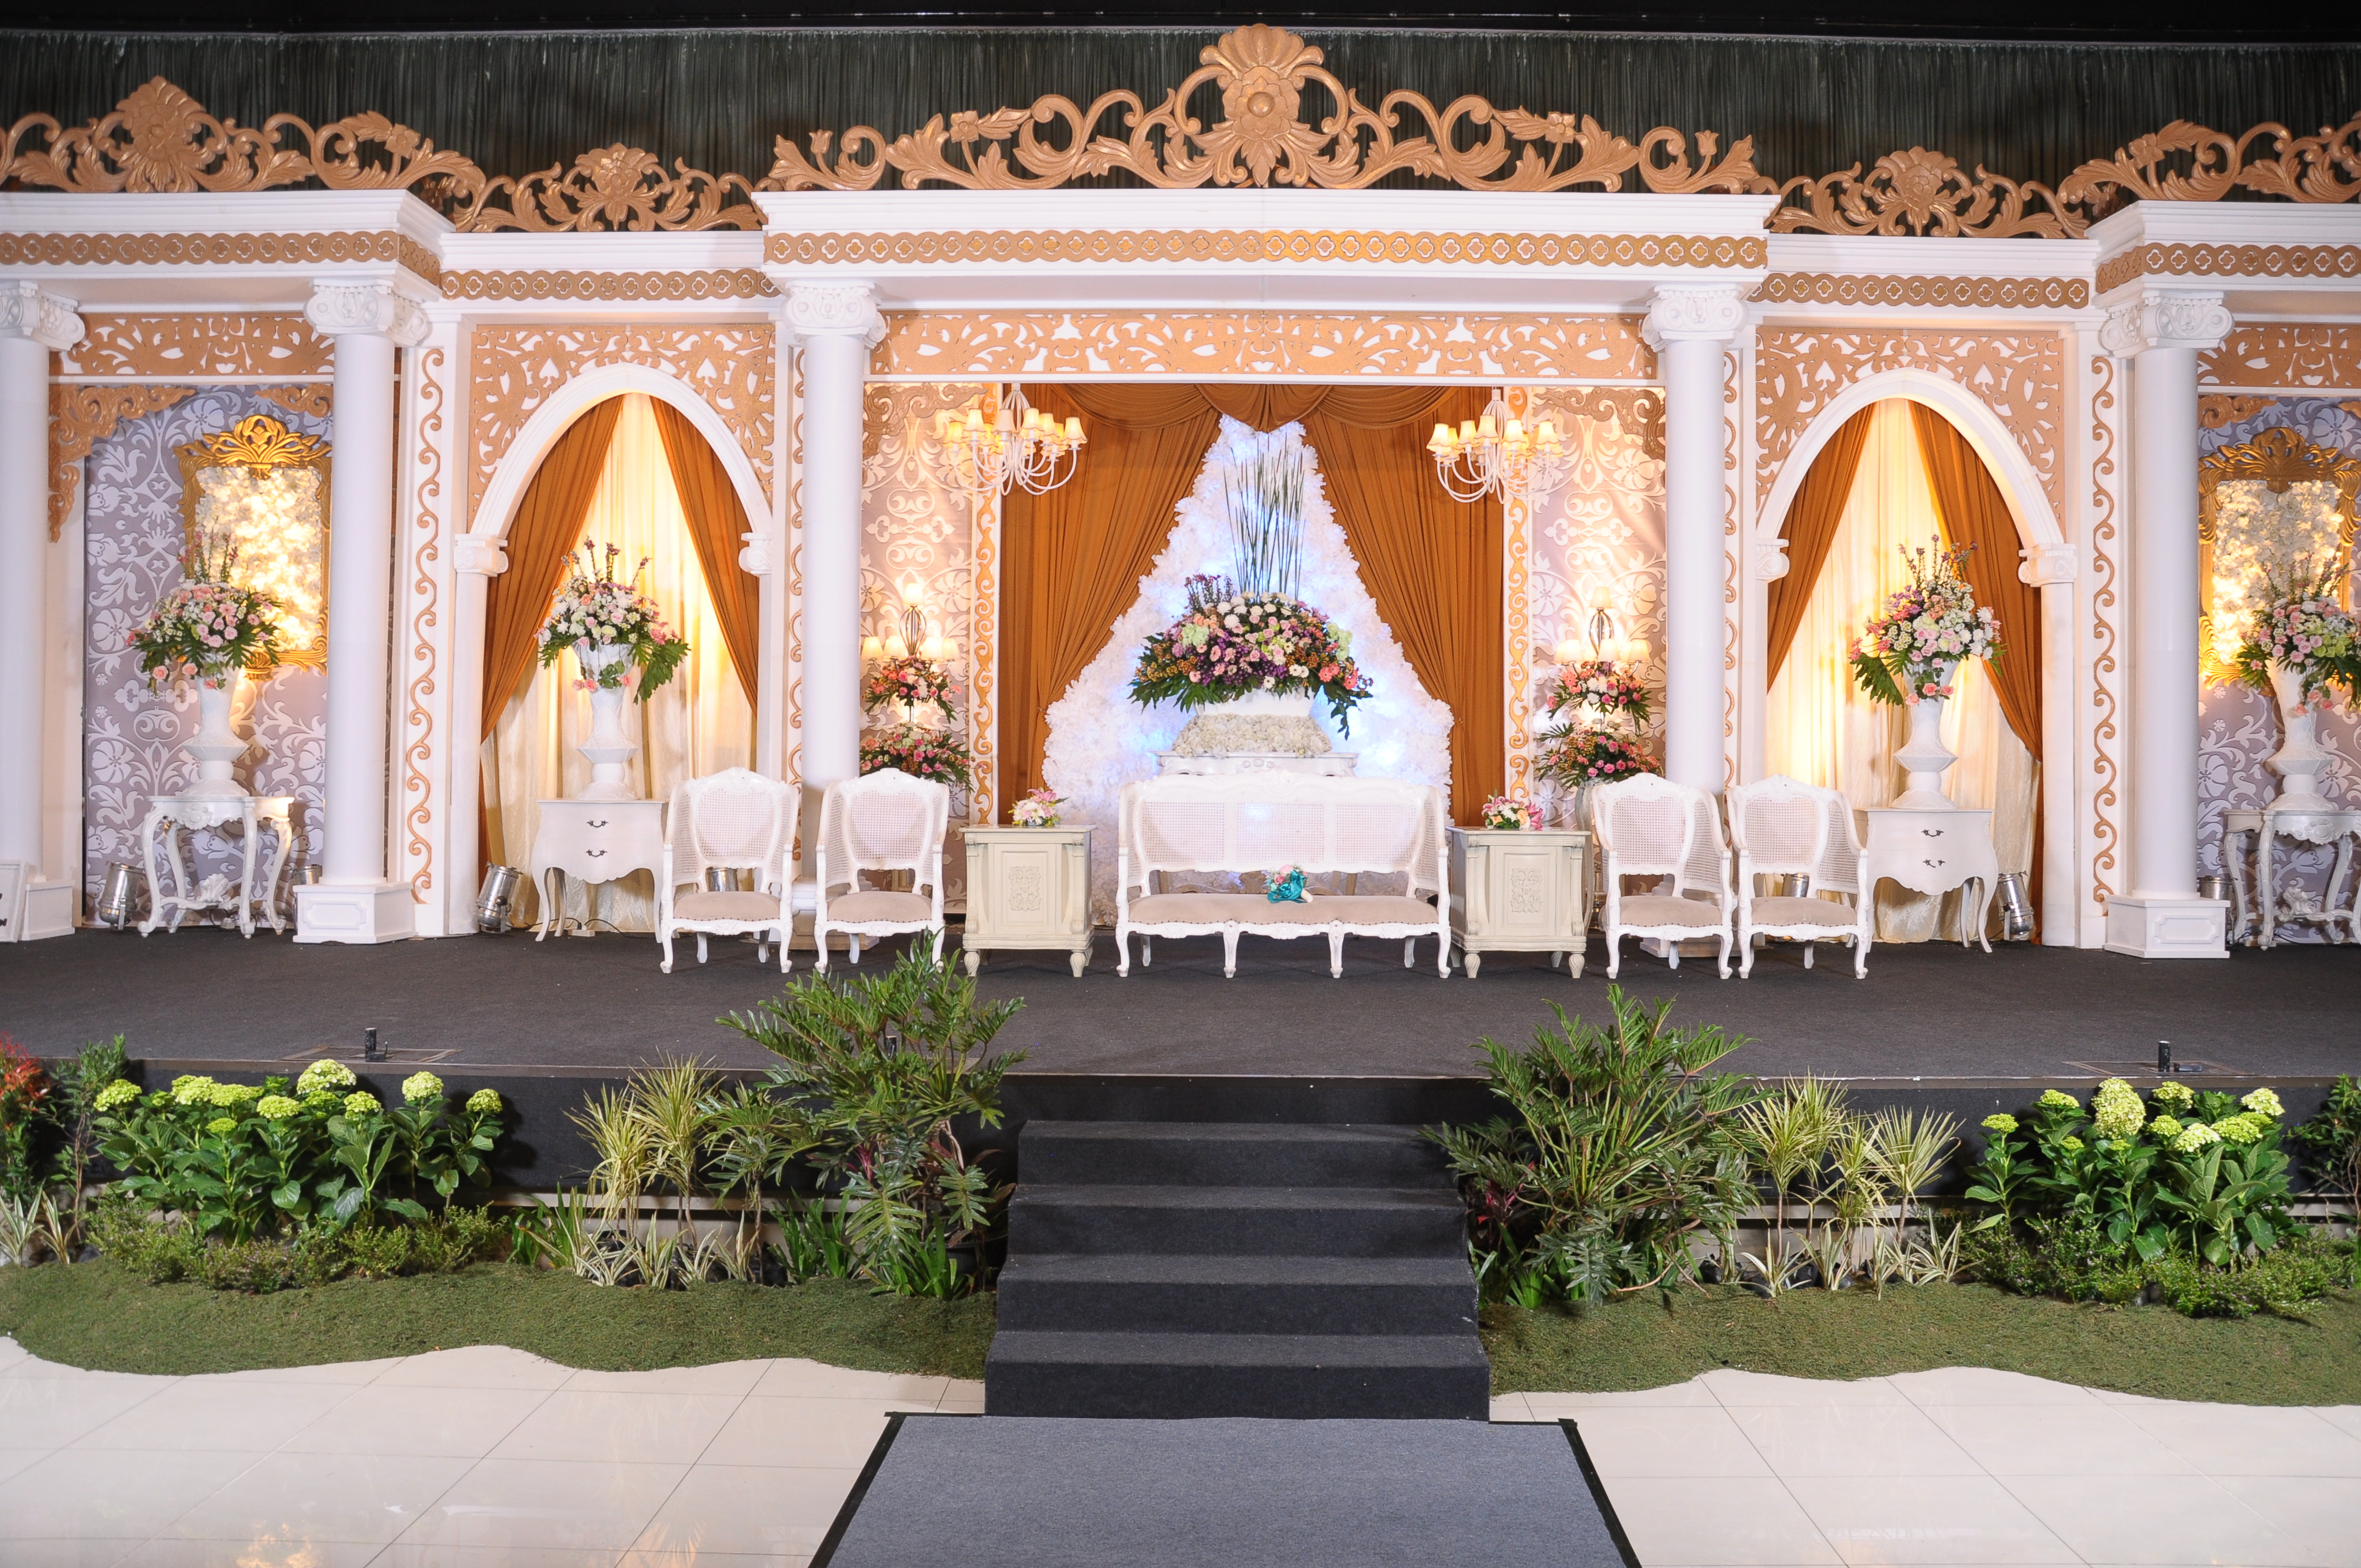 Pasundan palace lussy taufan by ghaisaniyara wedding bridestory junglespirit Images